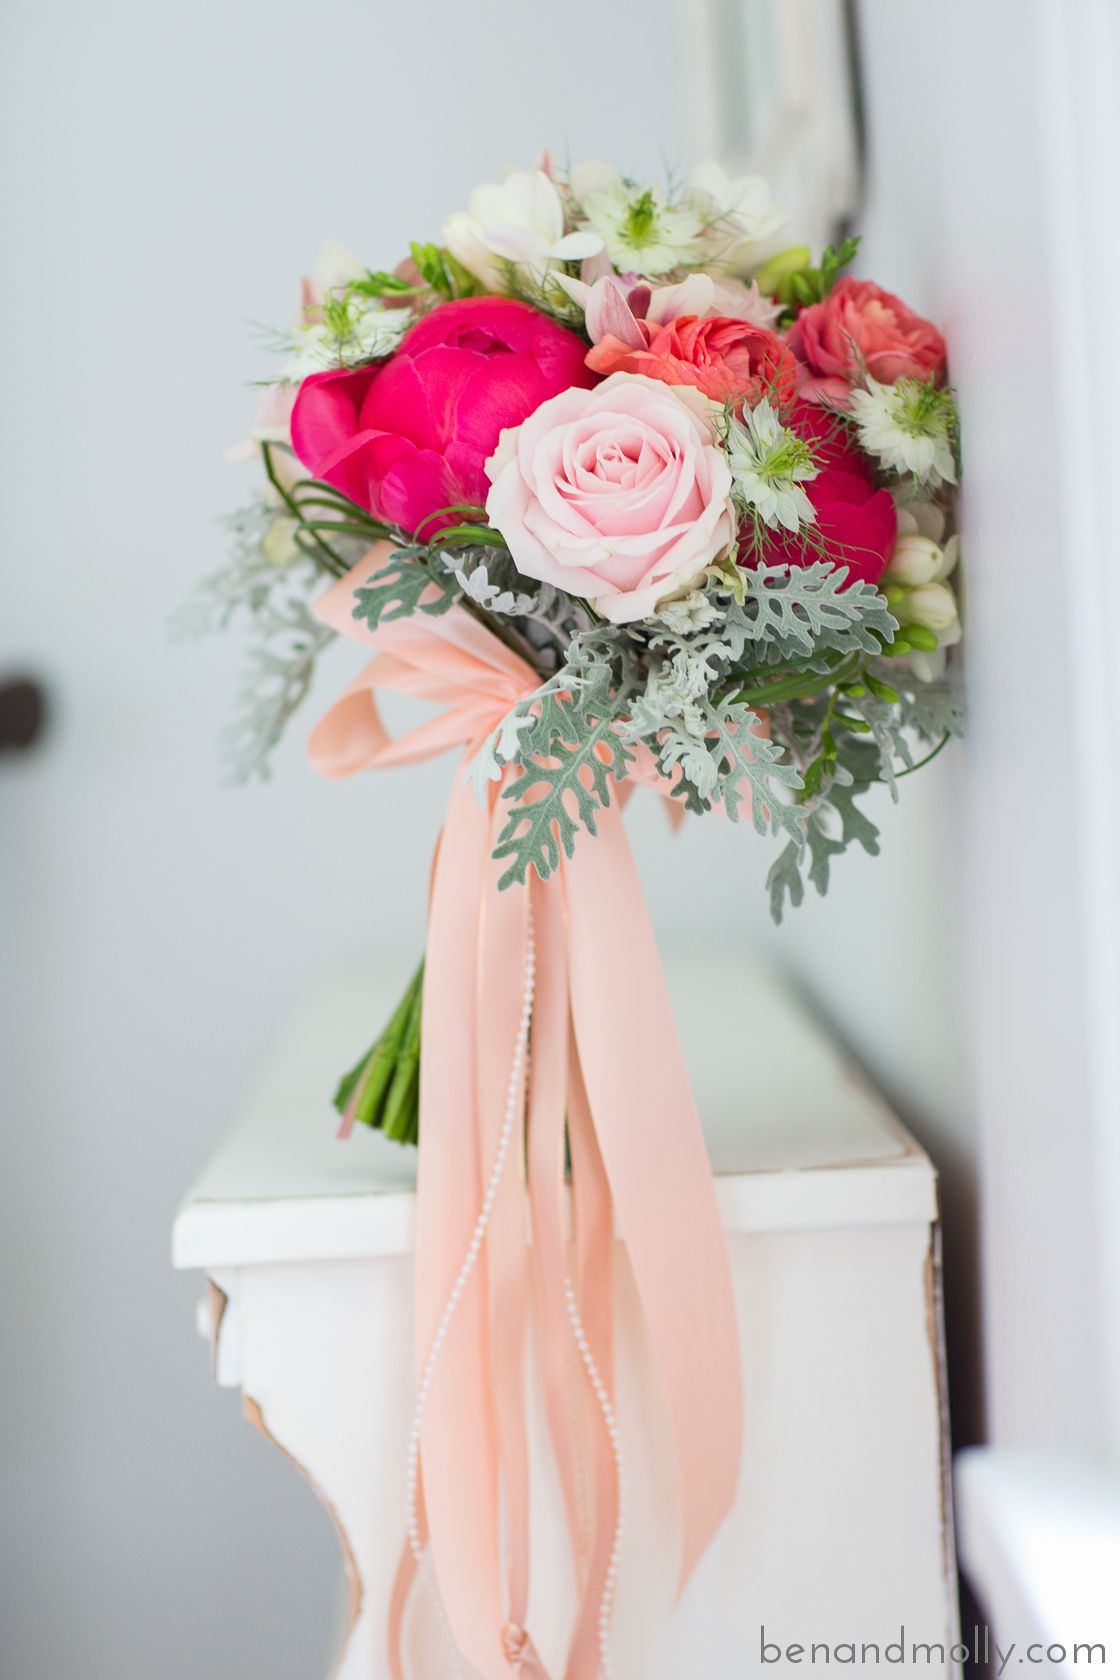 Pink And Coral Wedding Bouquet With Gatsby Inspired Ribbons Hanging Down Benandmolly